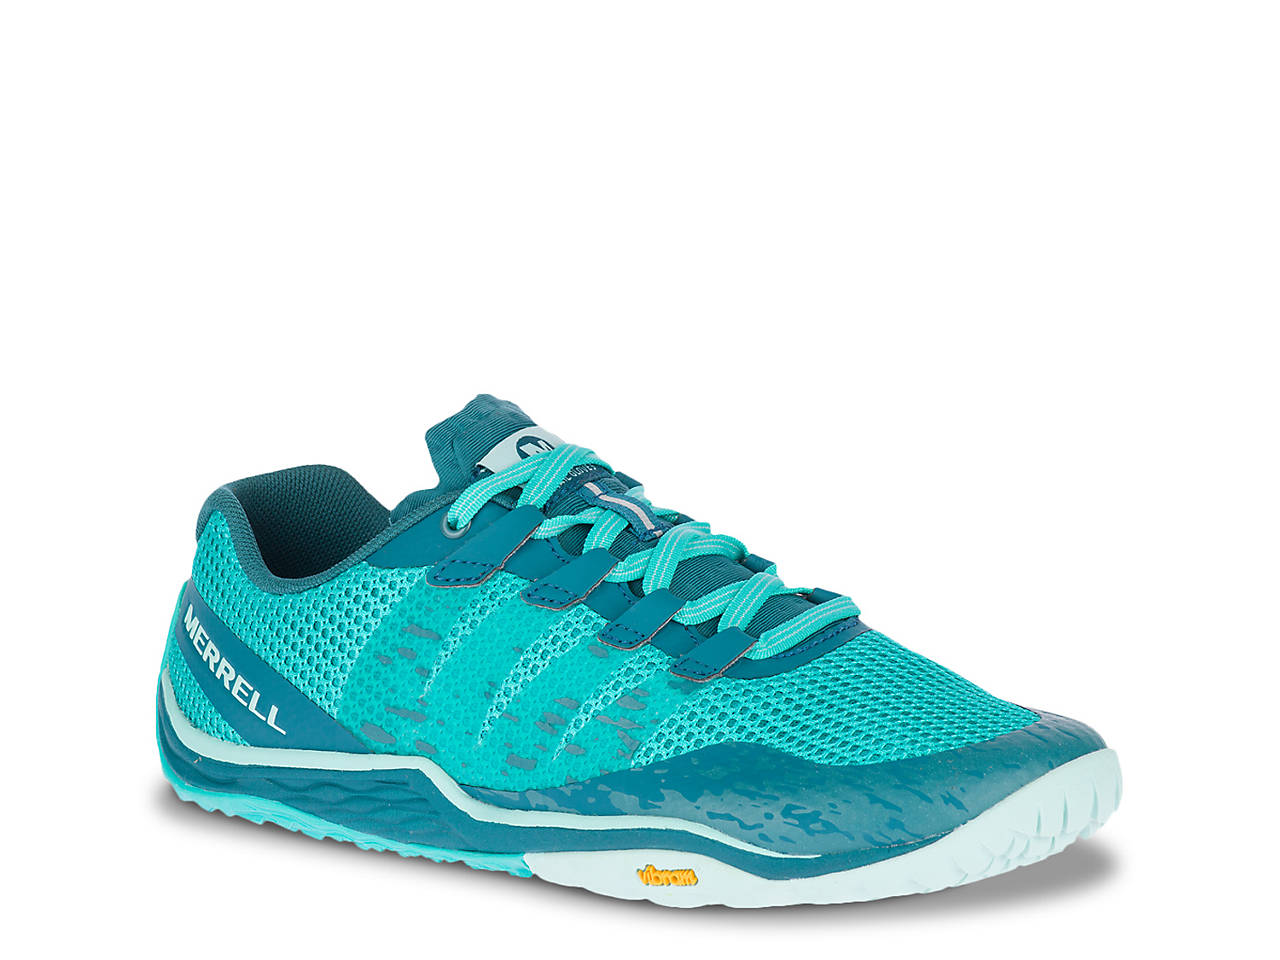 clear and distinctive variety design for sale Trail Glove 5 Trail Shoe